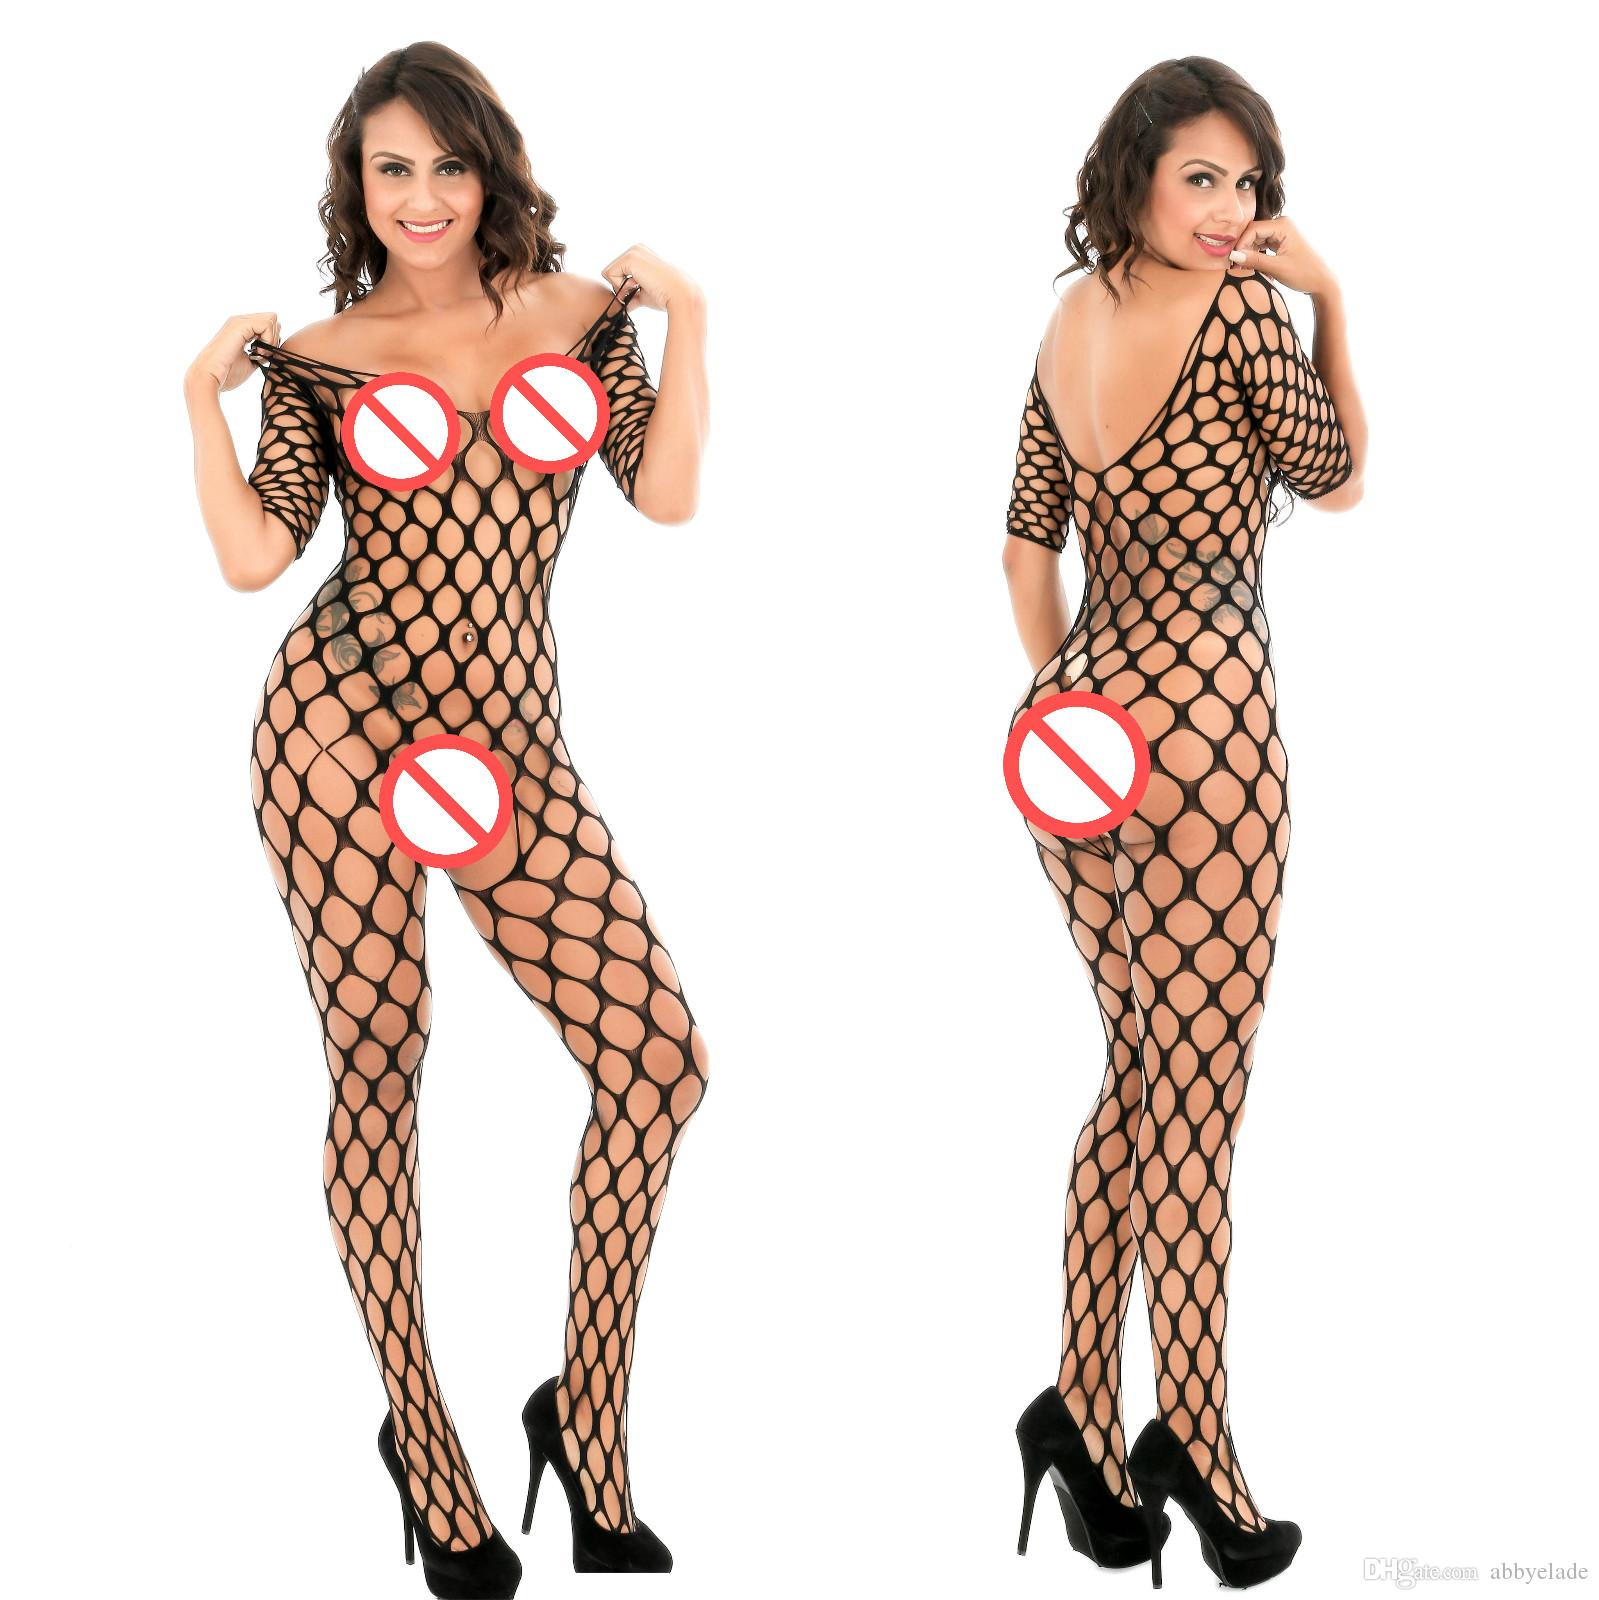 Costumes Femme érotique Sexy Femmes Sex Lingerie Body Stocking Ouvrir Crotch Lingère Sexy Sexy Fishnet Bodystocking Transparent femme